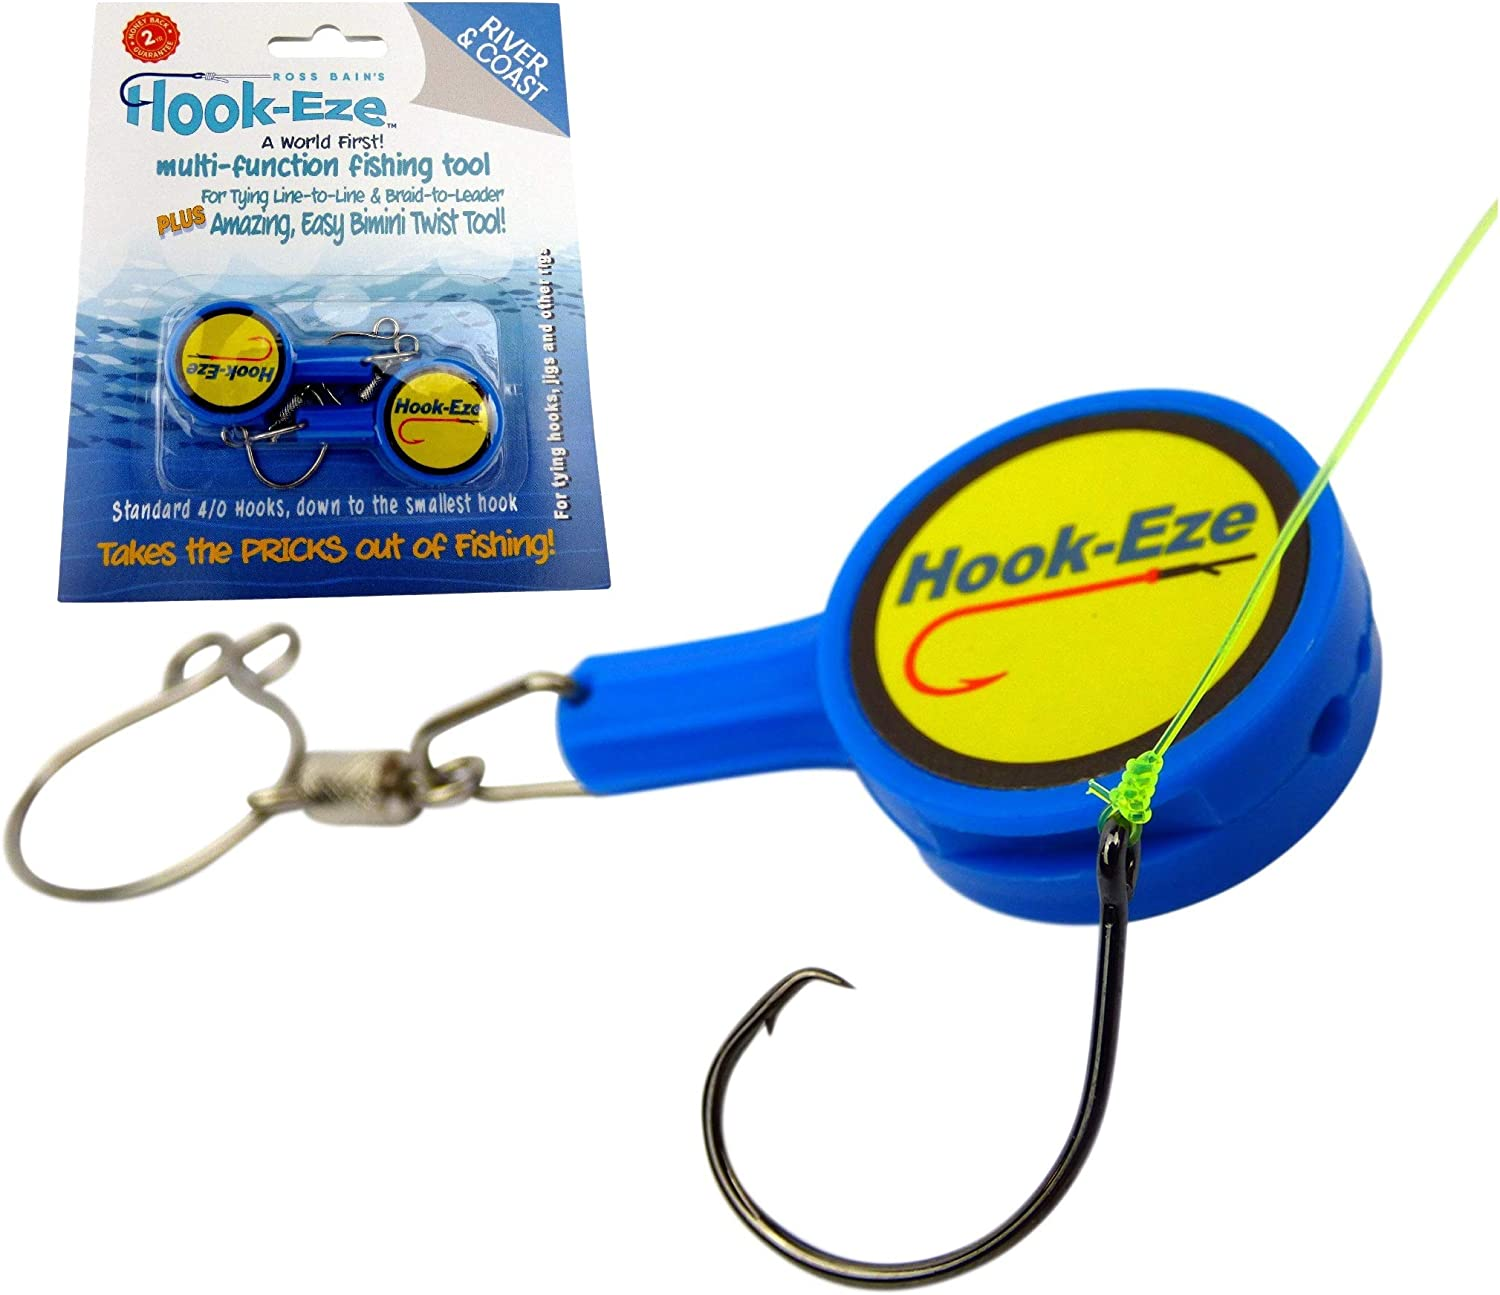 Hook-Eze Fishing Tool (Blue) Hook Tying & Safety Device + Line Cutter - Cover Hooks on 2 Poles & Travel Safely fully rigged. Multi function Fishing Device : Sports & Outdoors